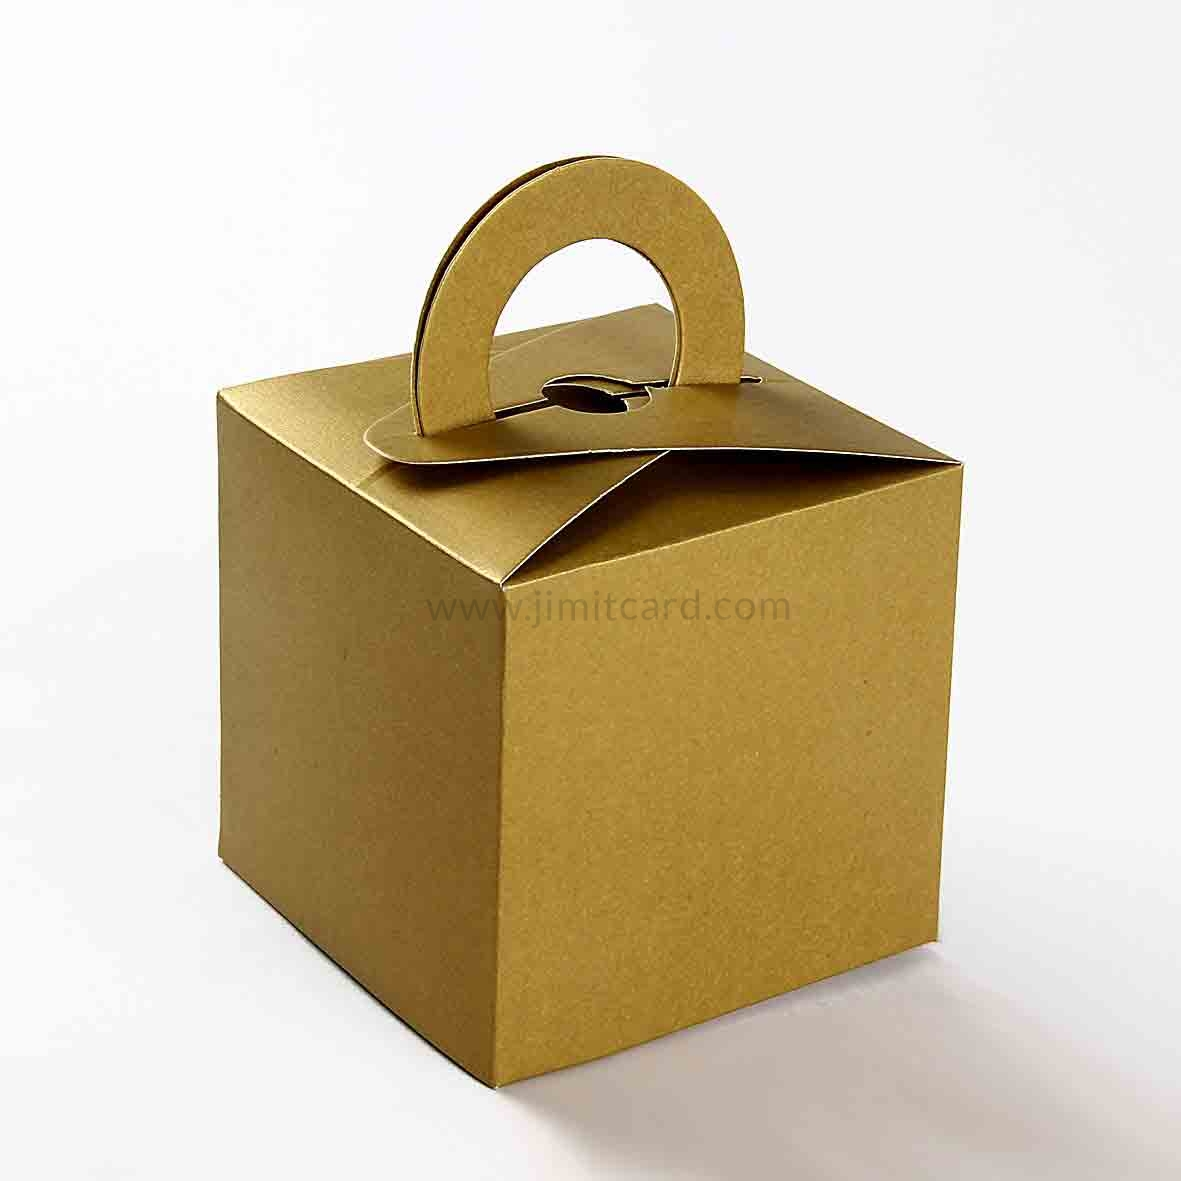 Square Wedding Party Favor Box in Golden Color with a Holder